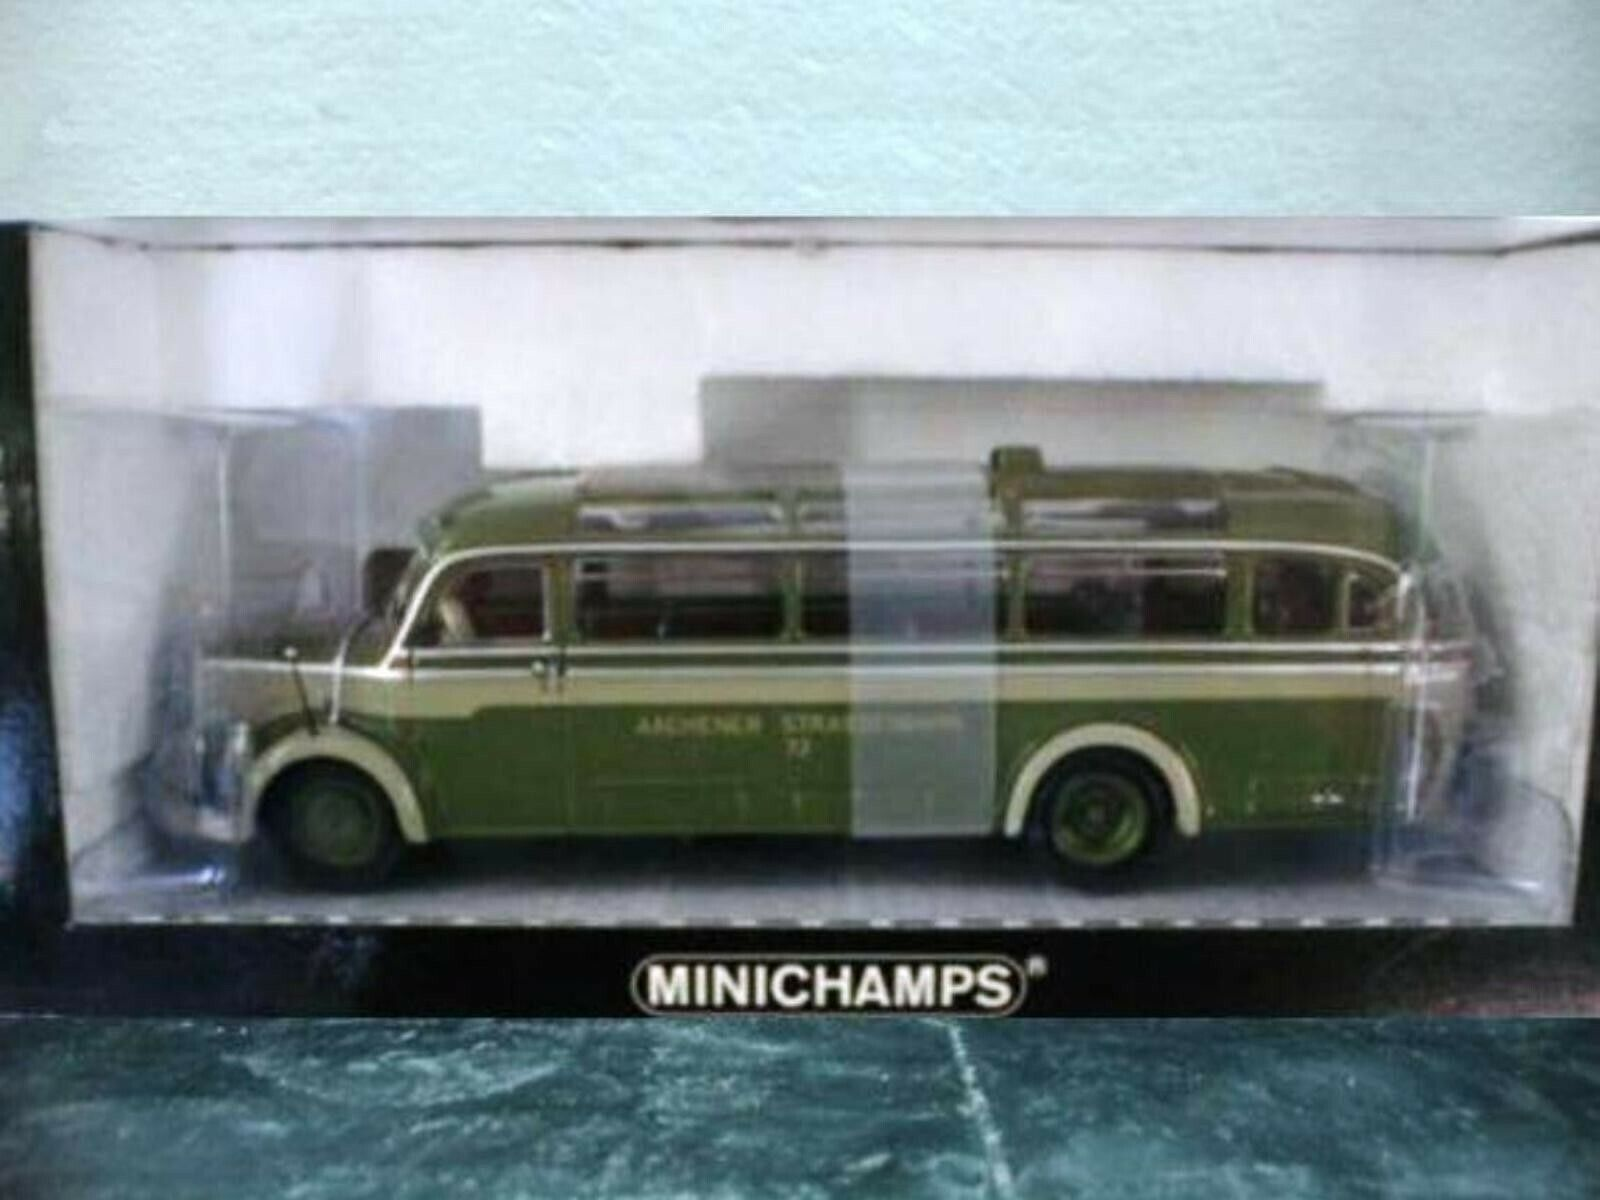 WOW EXTREMELY RARE Mercedes O 3500 Bus Aachener 1 43 Minichamps-302 317 321 404